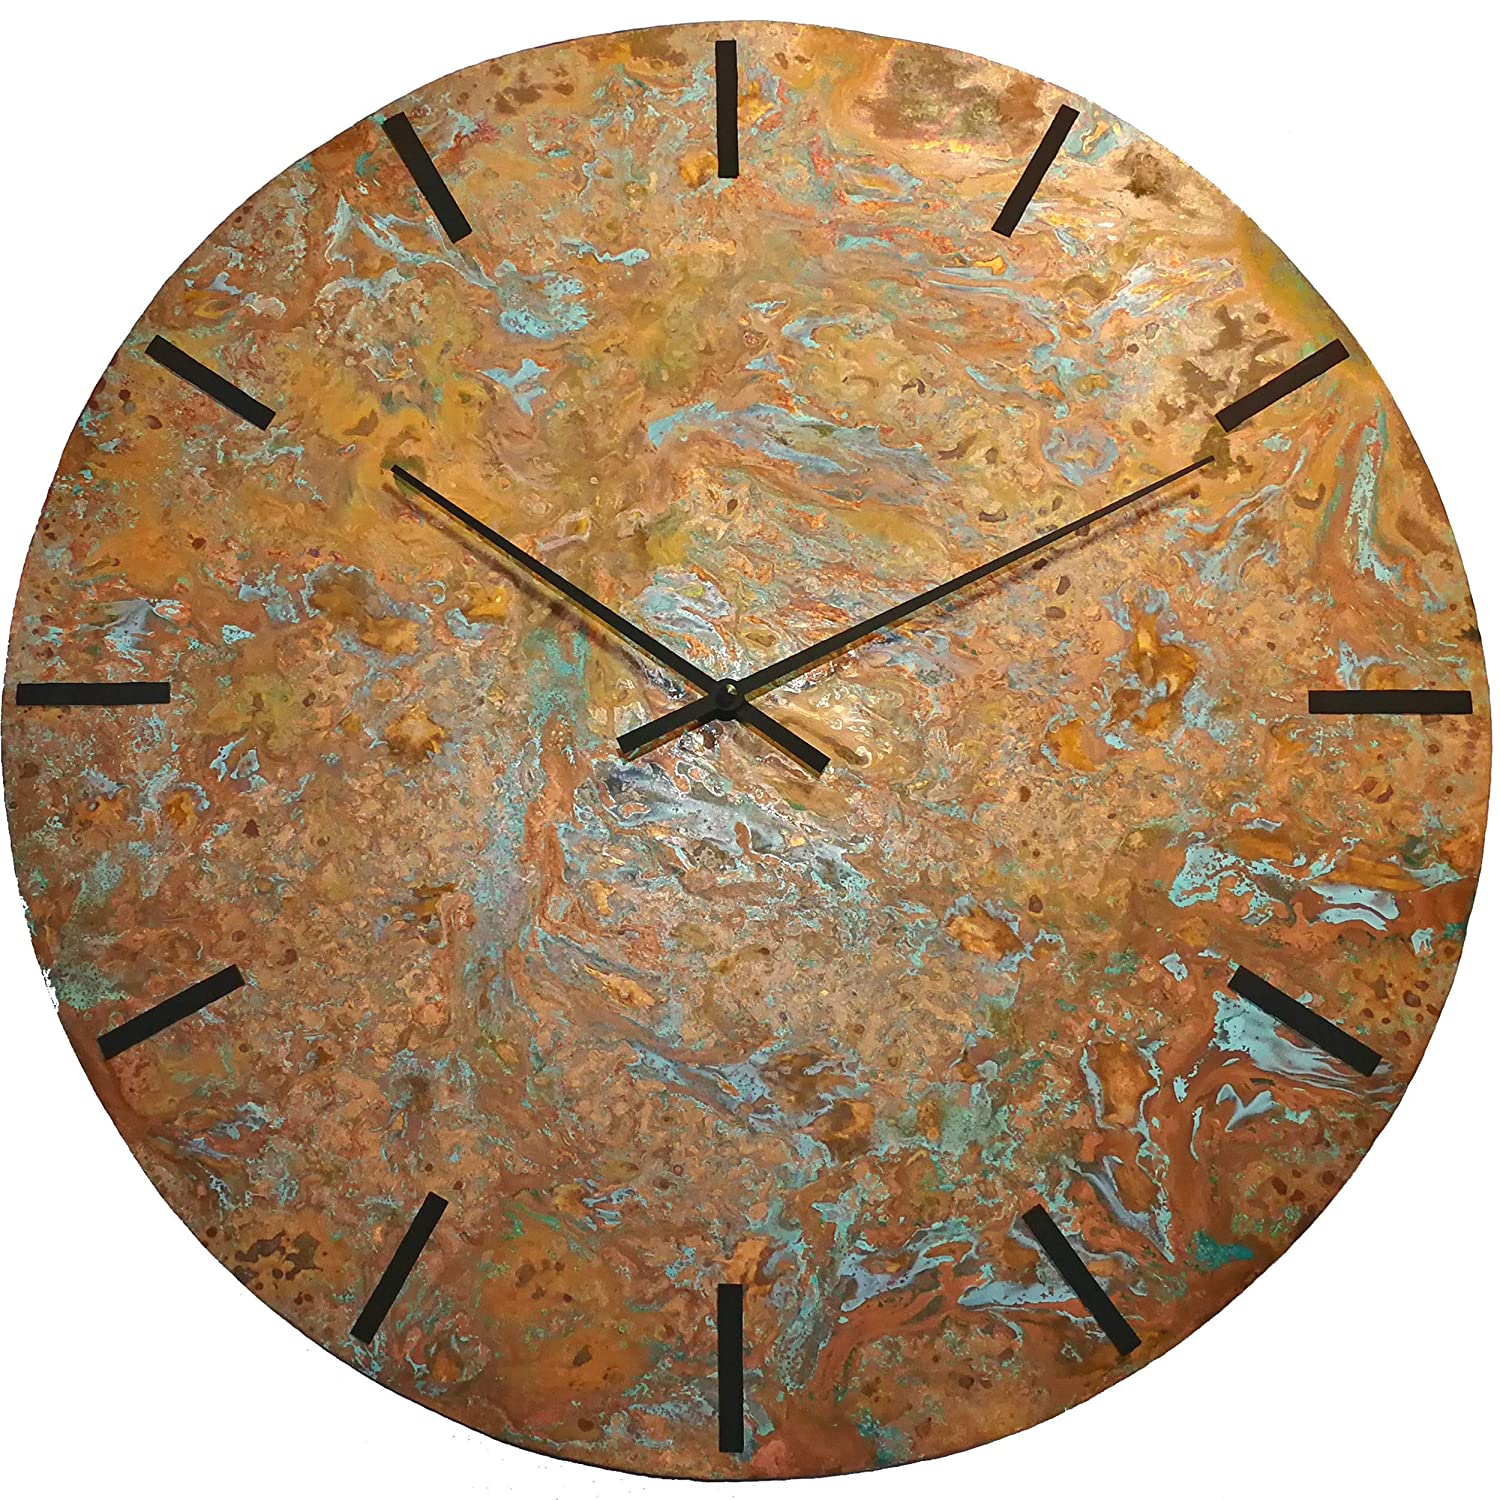 20-inch Copper Wall Clock - Rustic Gift Art Free shipping Max 40% OFF on posting reviews Decor Anniversary